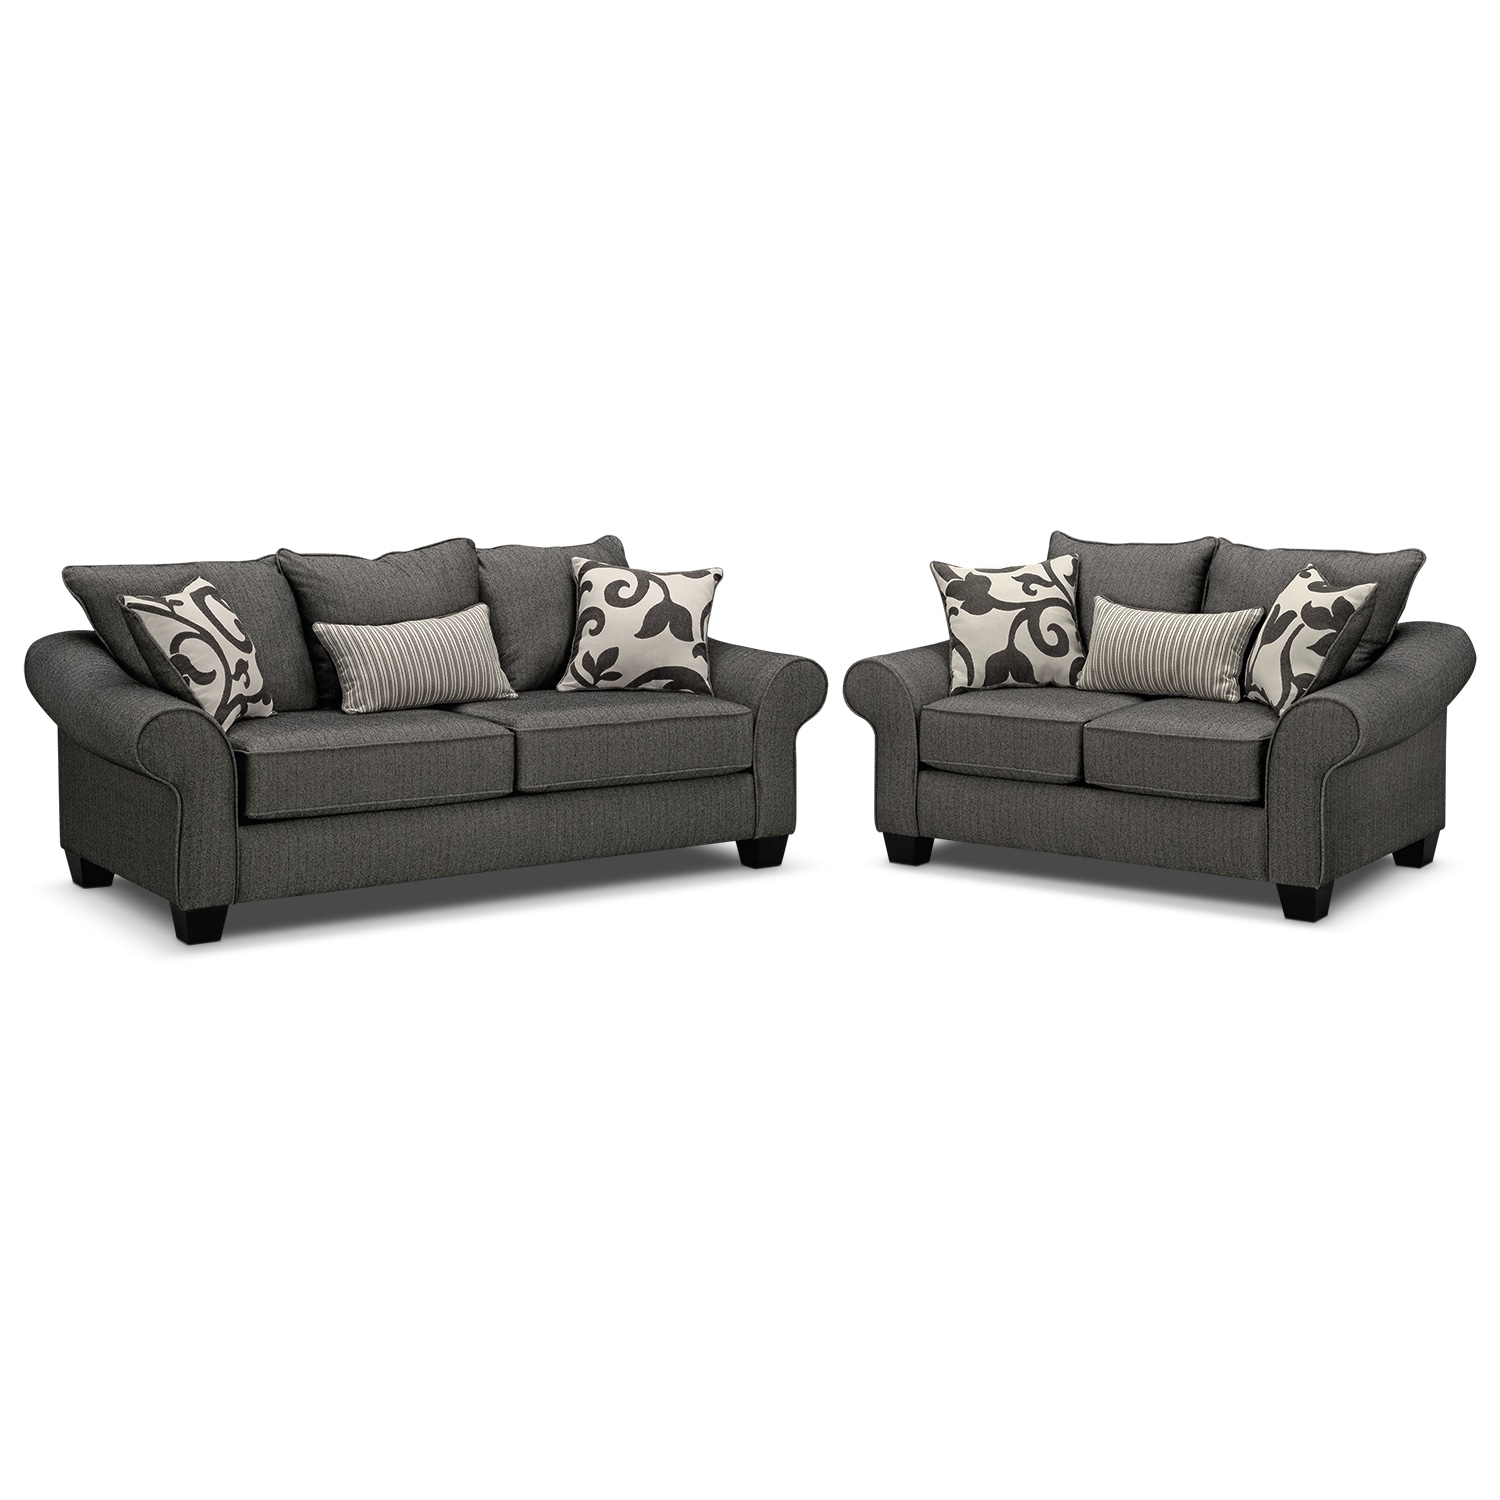 Colette Sofa And Loveseat Set Gray Value City Furniture